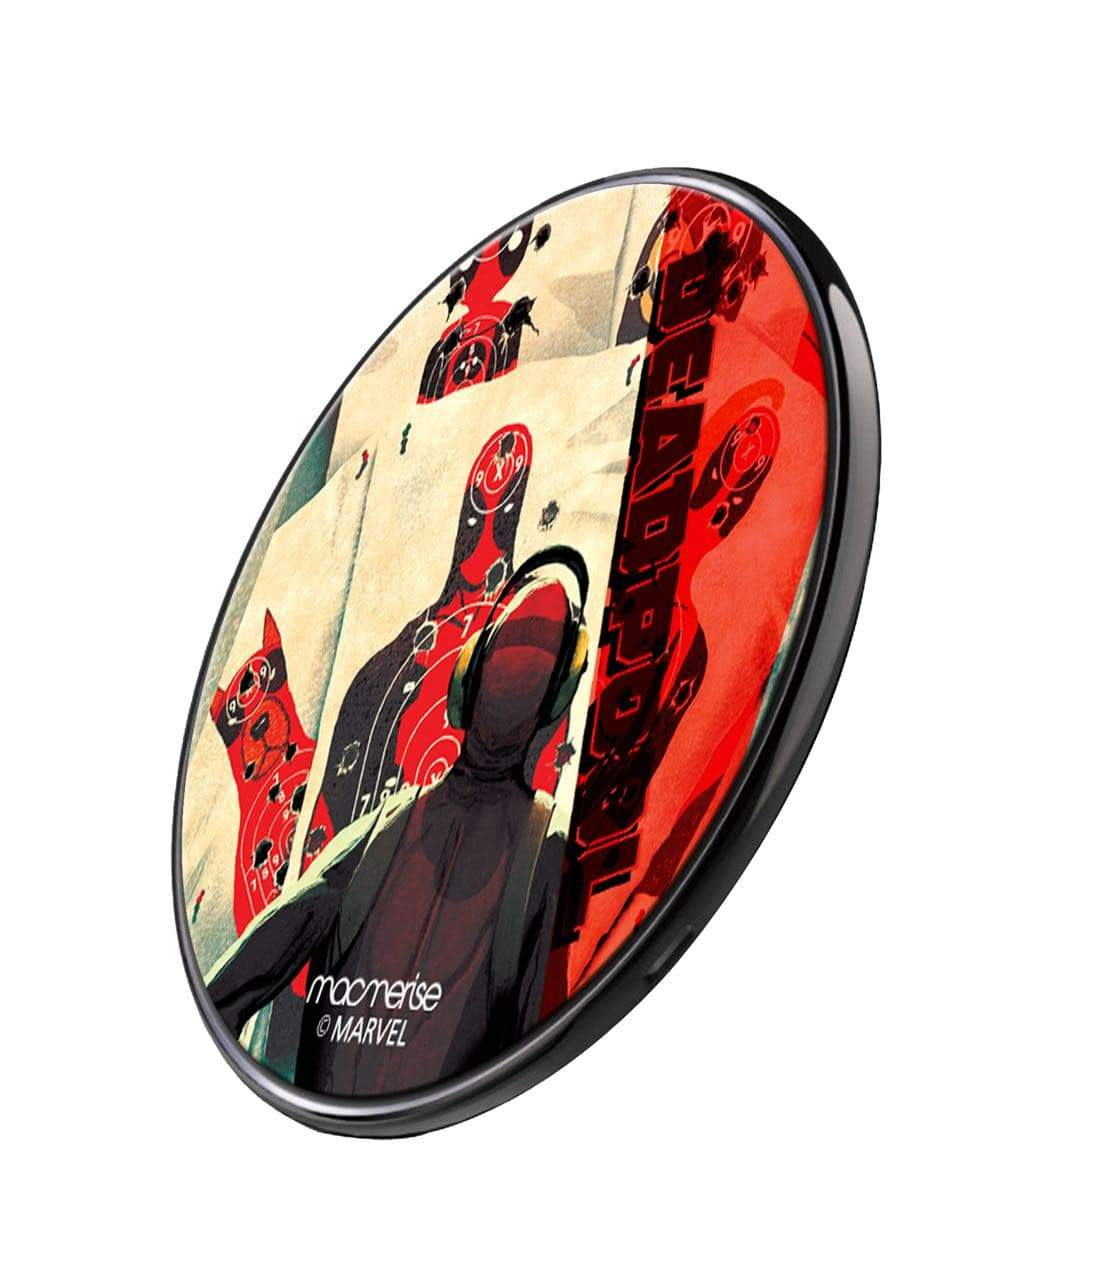 Target Deadpool Wireless Charger by Macmerise -Macmerise - India - www.superherotoystore.com